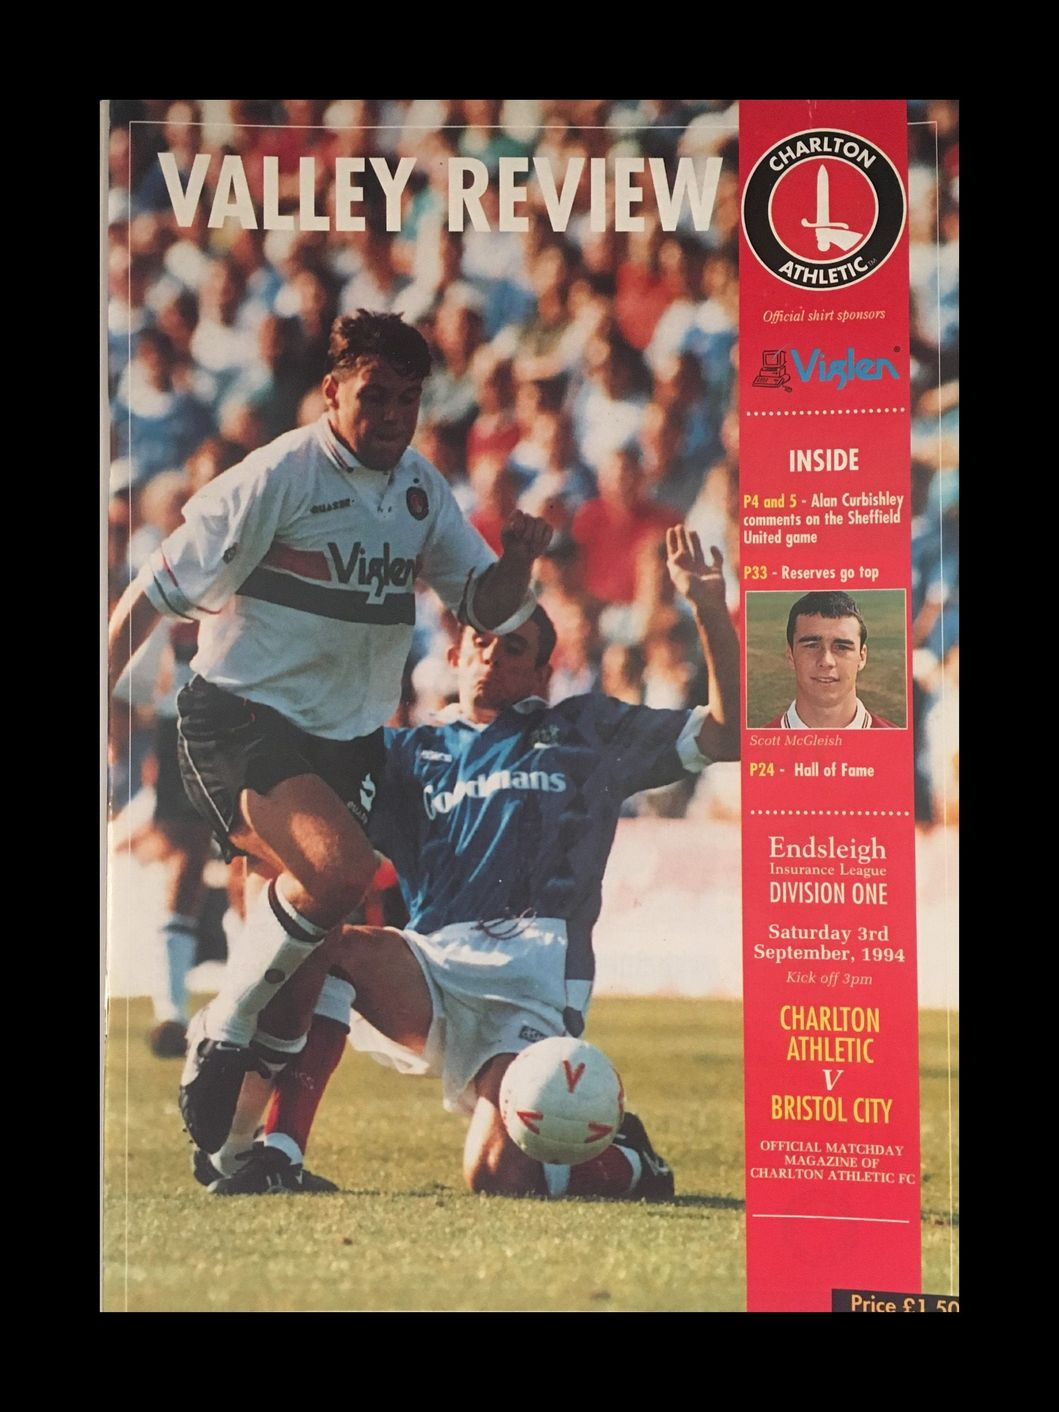 Charlton Athletic v Bristol City 03-09-1994 Programme